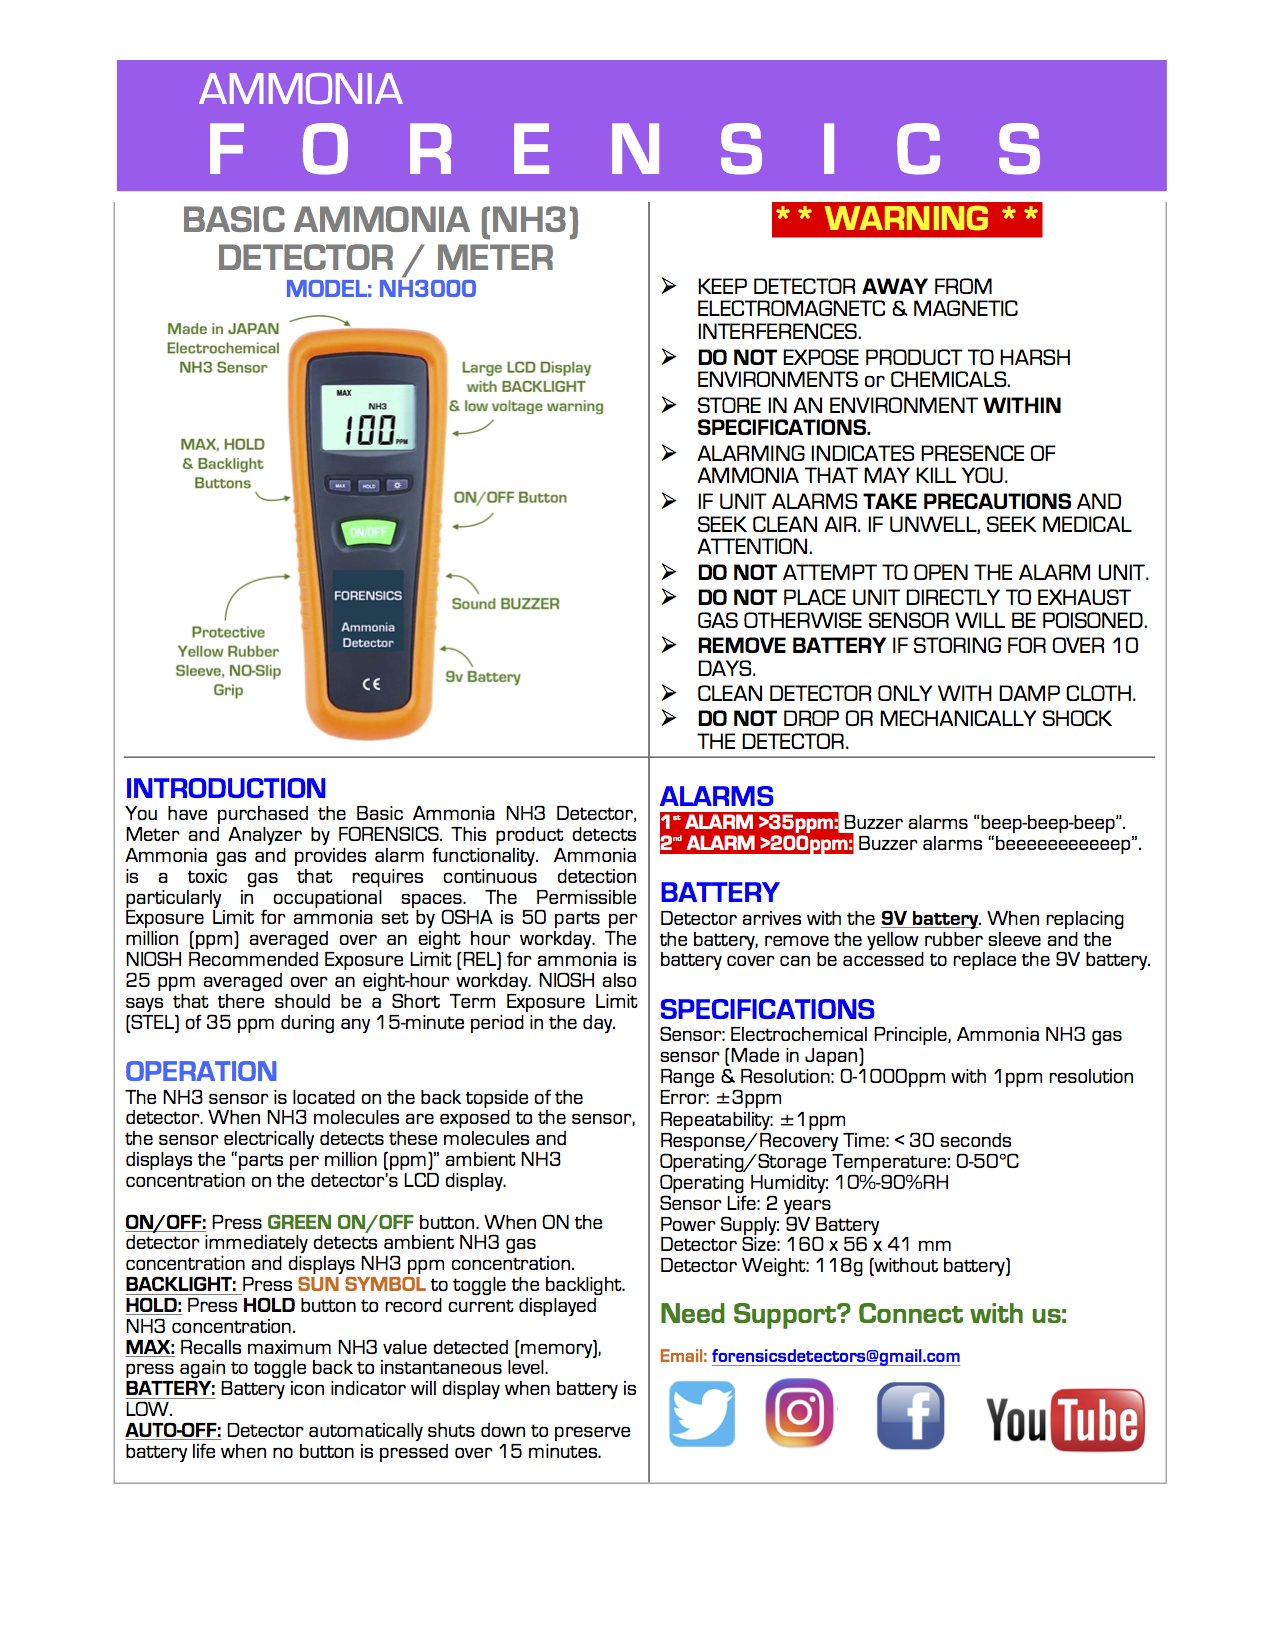 Basic Ammonia NH3 Detector, Meter and Analyzer by FORENSICS | 0-1000ppm with 1ppm resolution & error <5ppm | Business & Industrial Use | Soft Touch Rubber Grip | Large Display & Backlight |